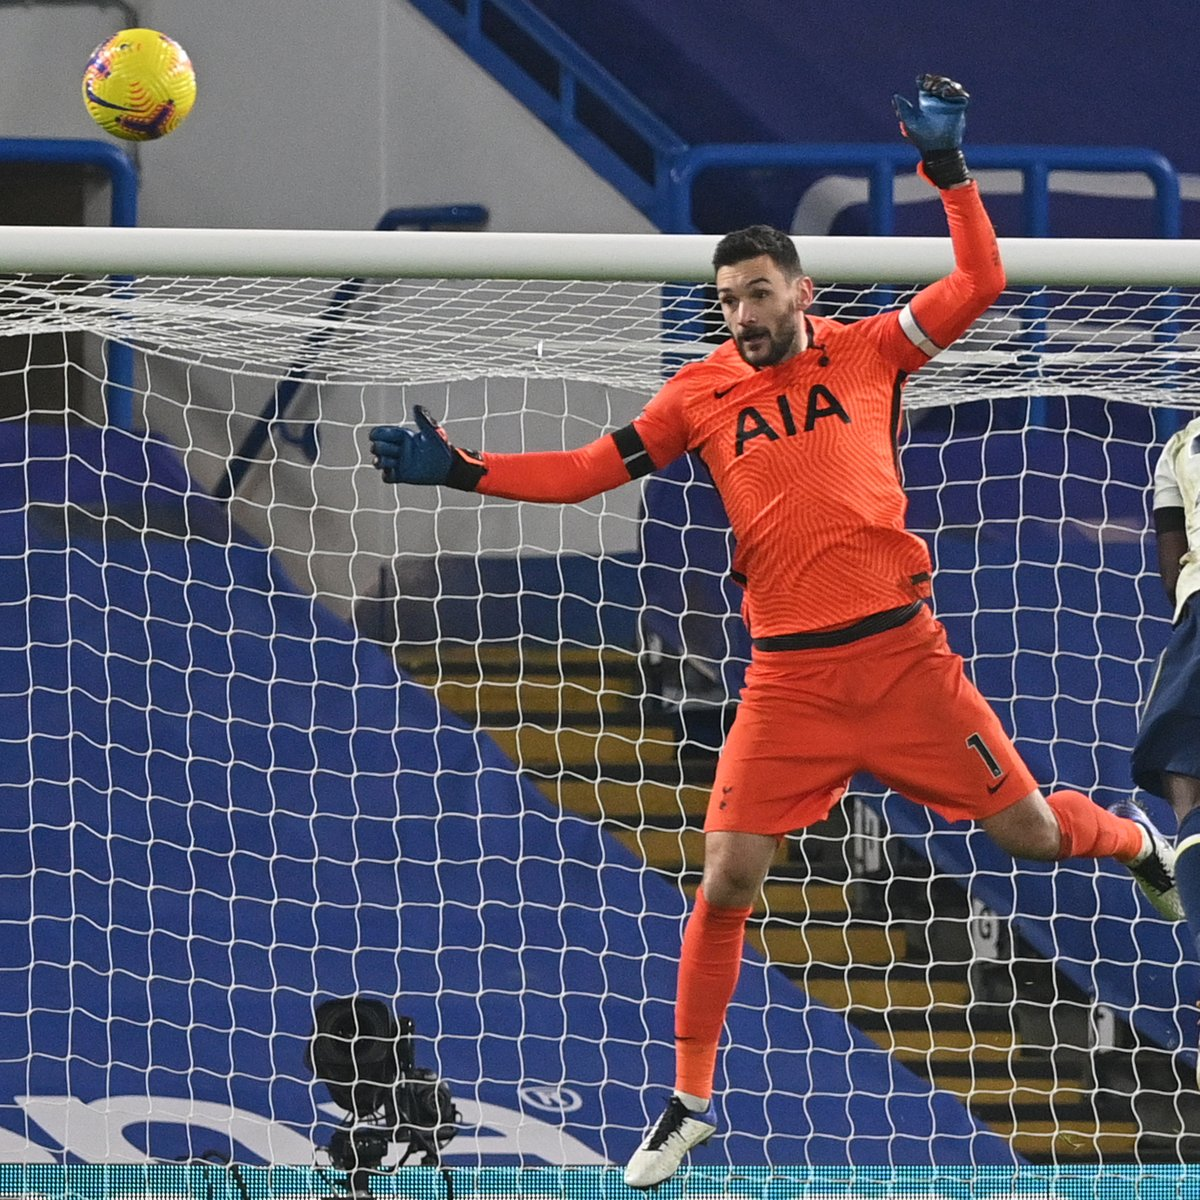 This save by Hugo was huge! Not enough is being said about this save.  #COYS #THFC